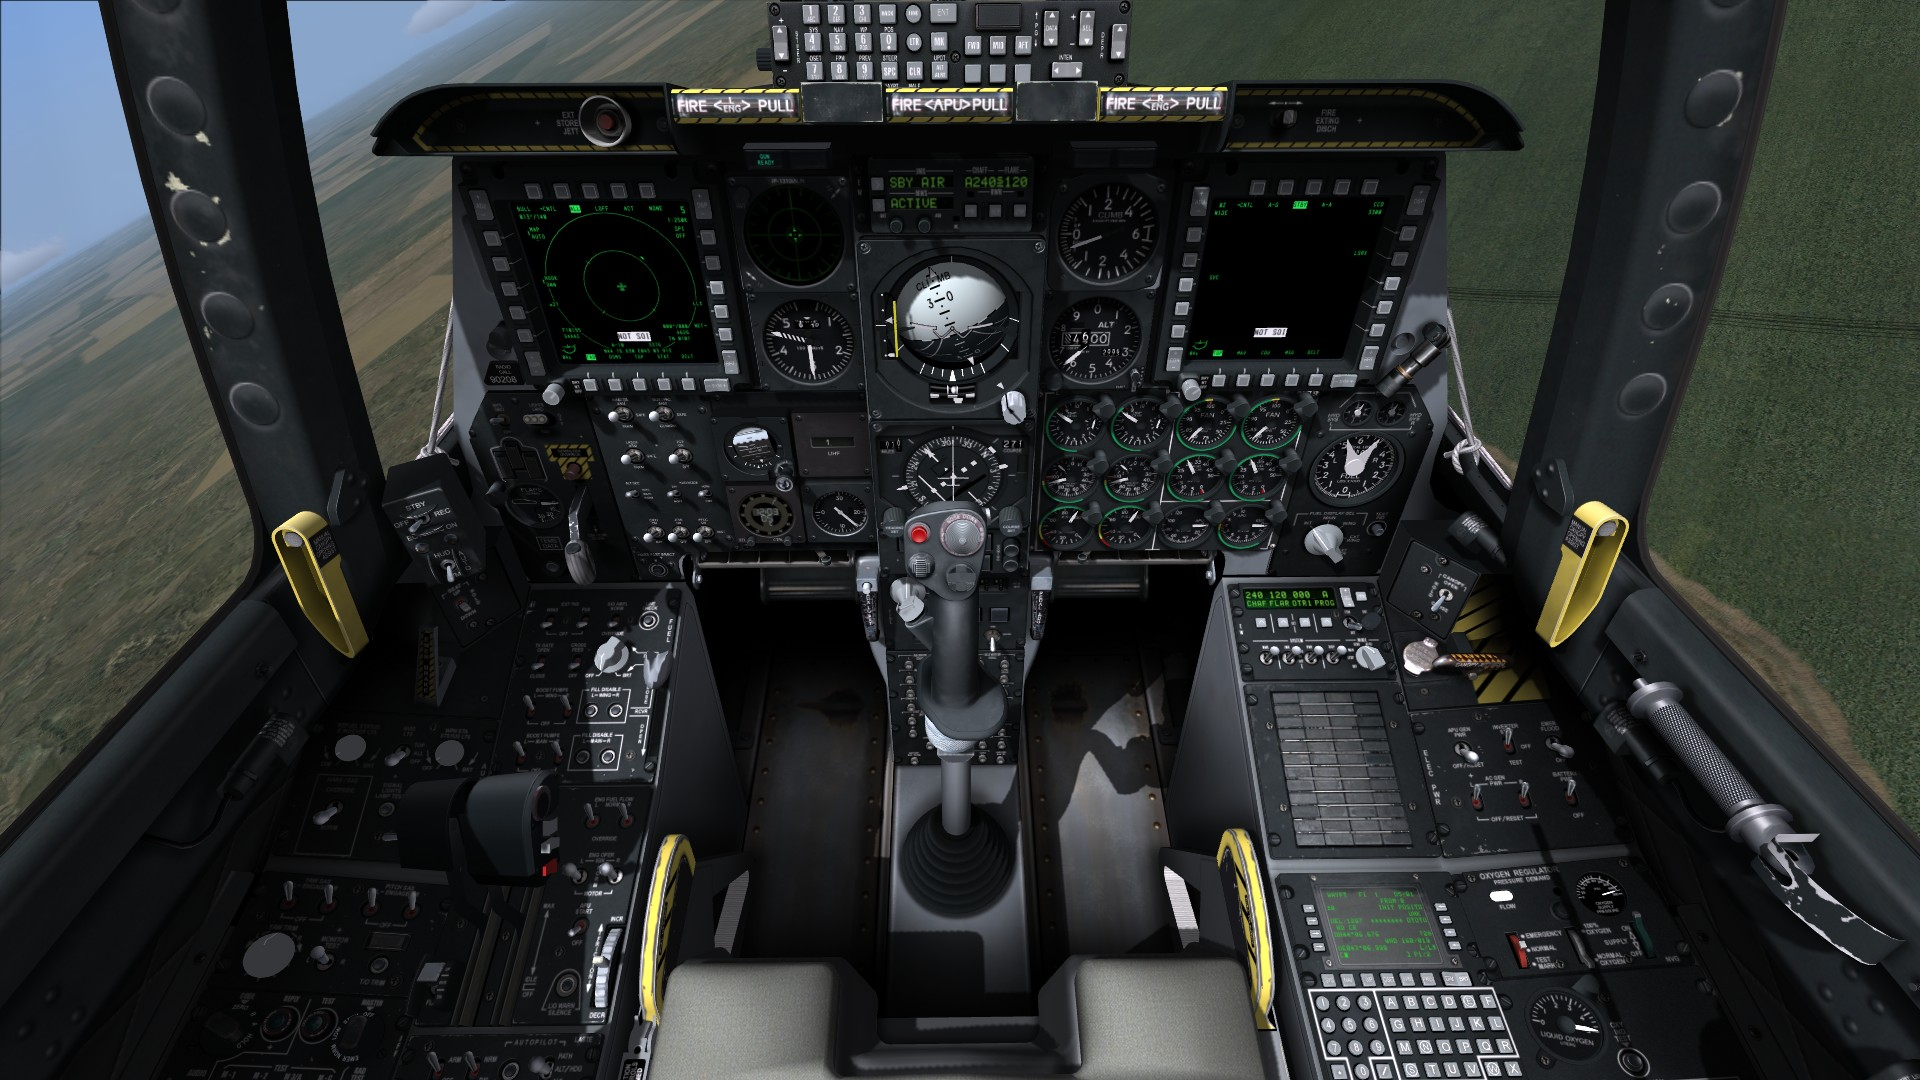 649d11418b3  DCS World  Flight Simulator Gets Improved Oculus Rift Support. By